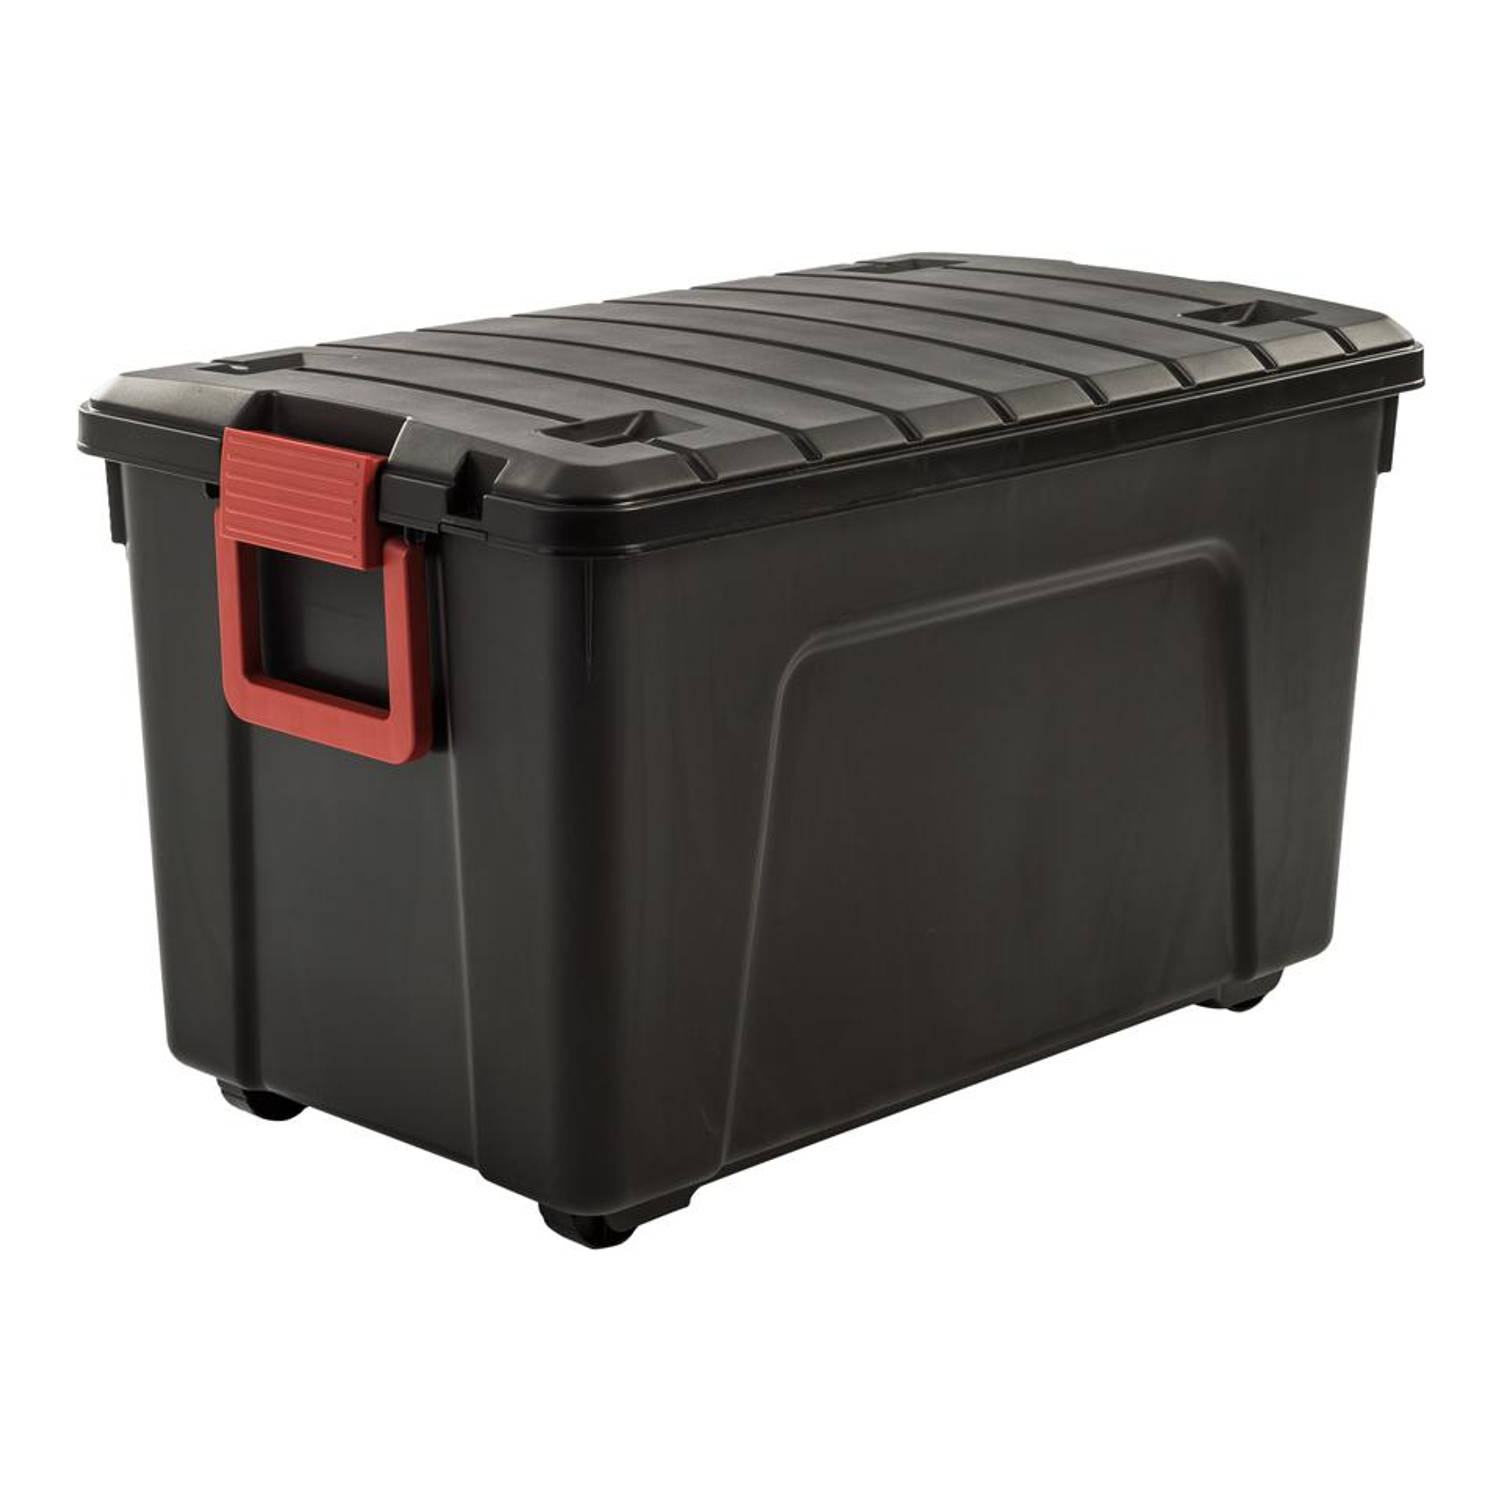 Iris Store It All opbergbox 75 liter zwart rood